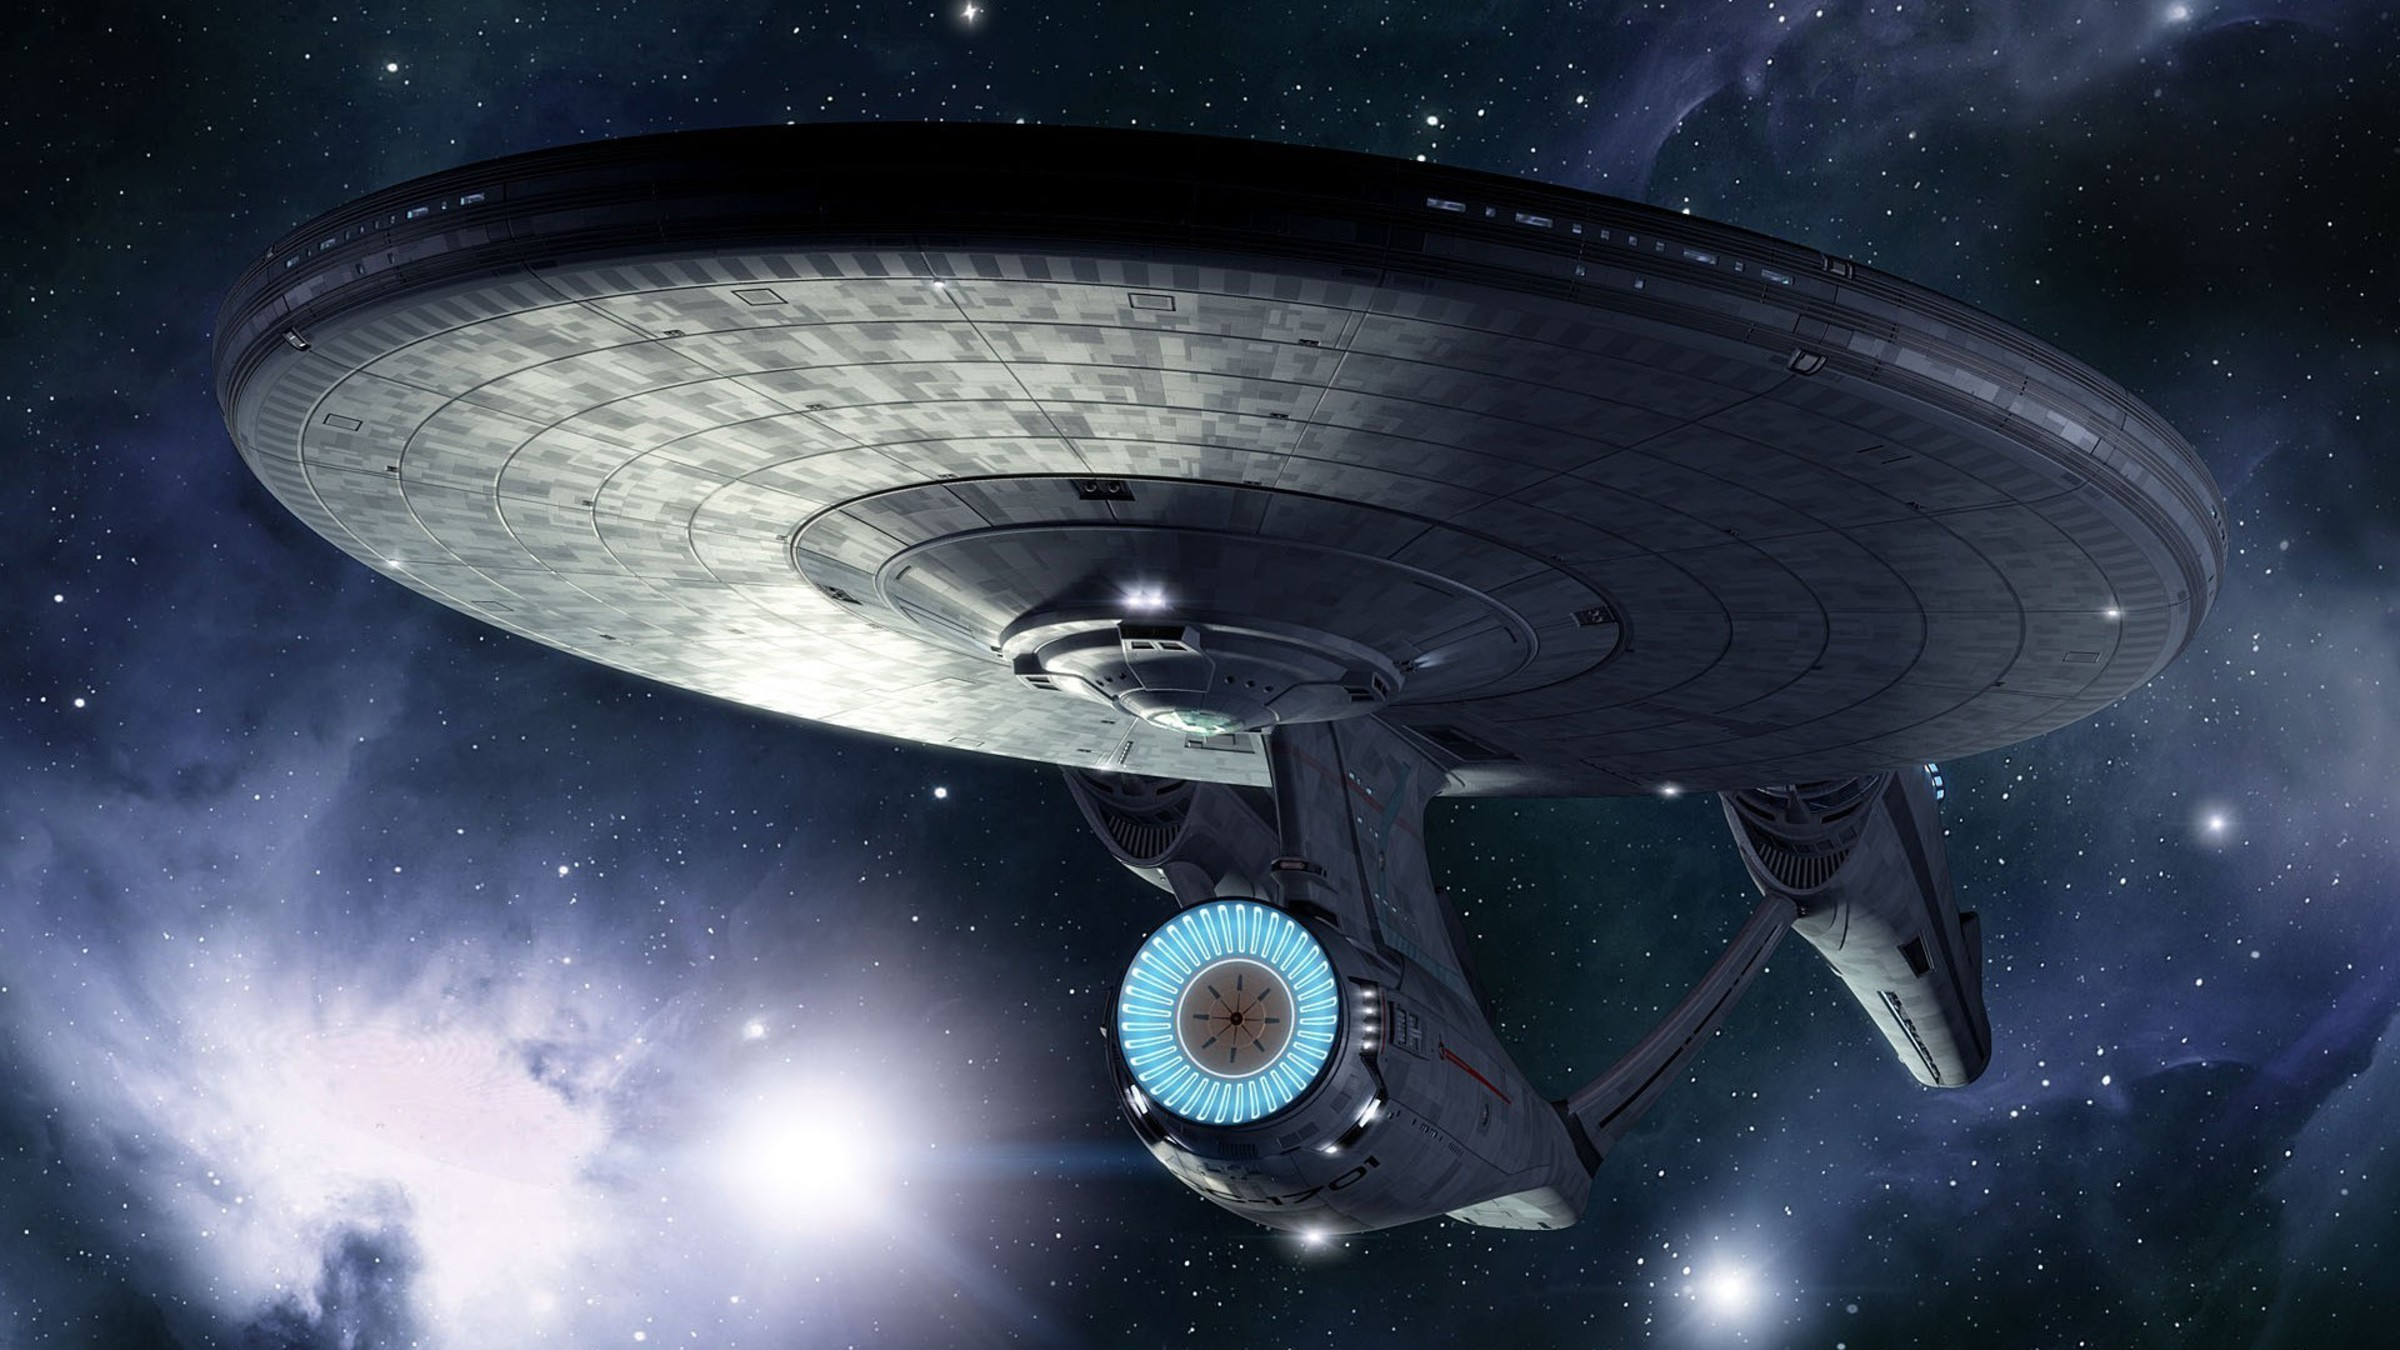 Futuristic star trek spaceships science fiction scifi wallpaper